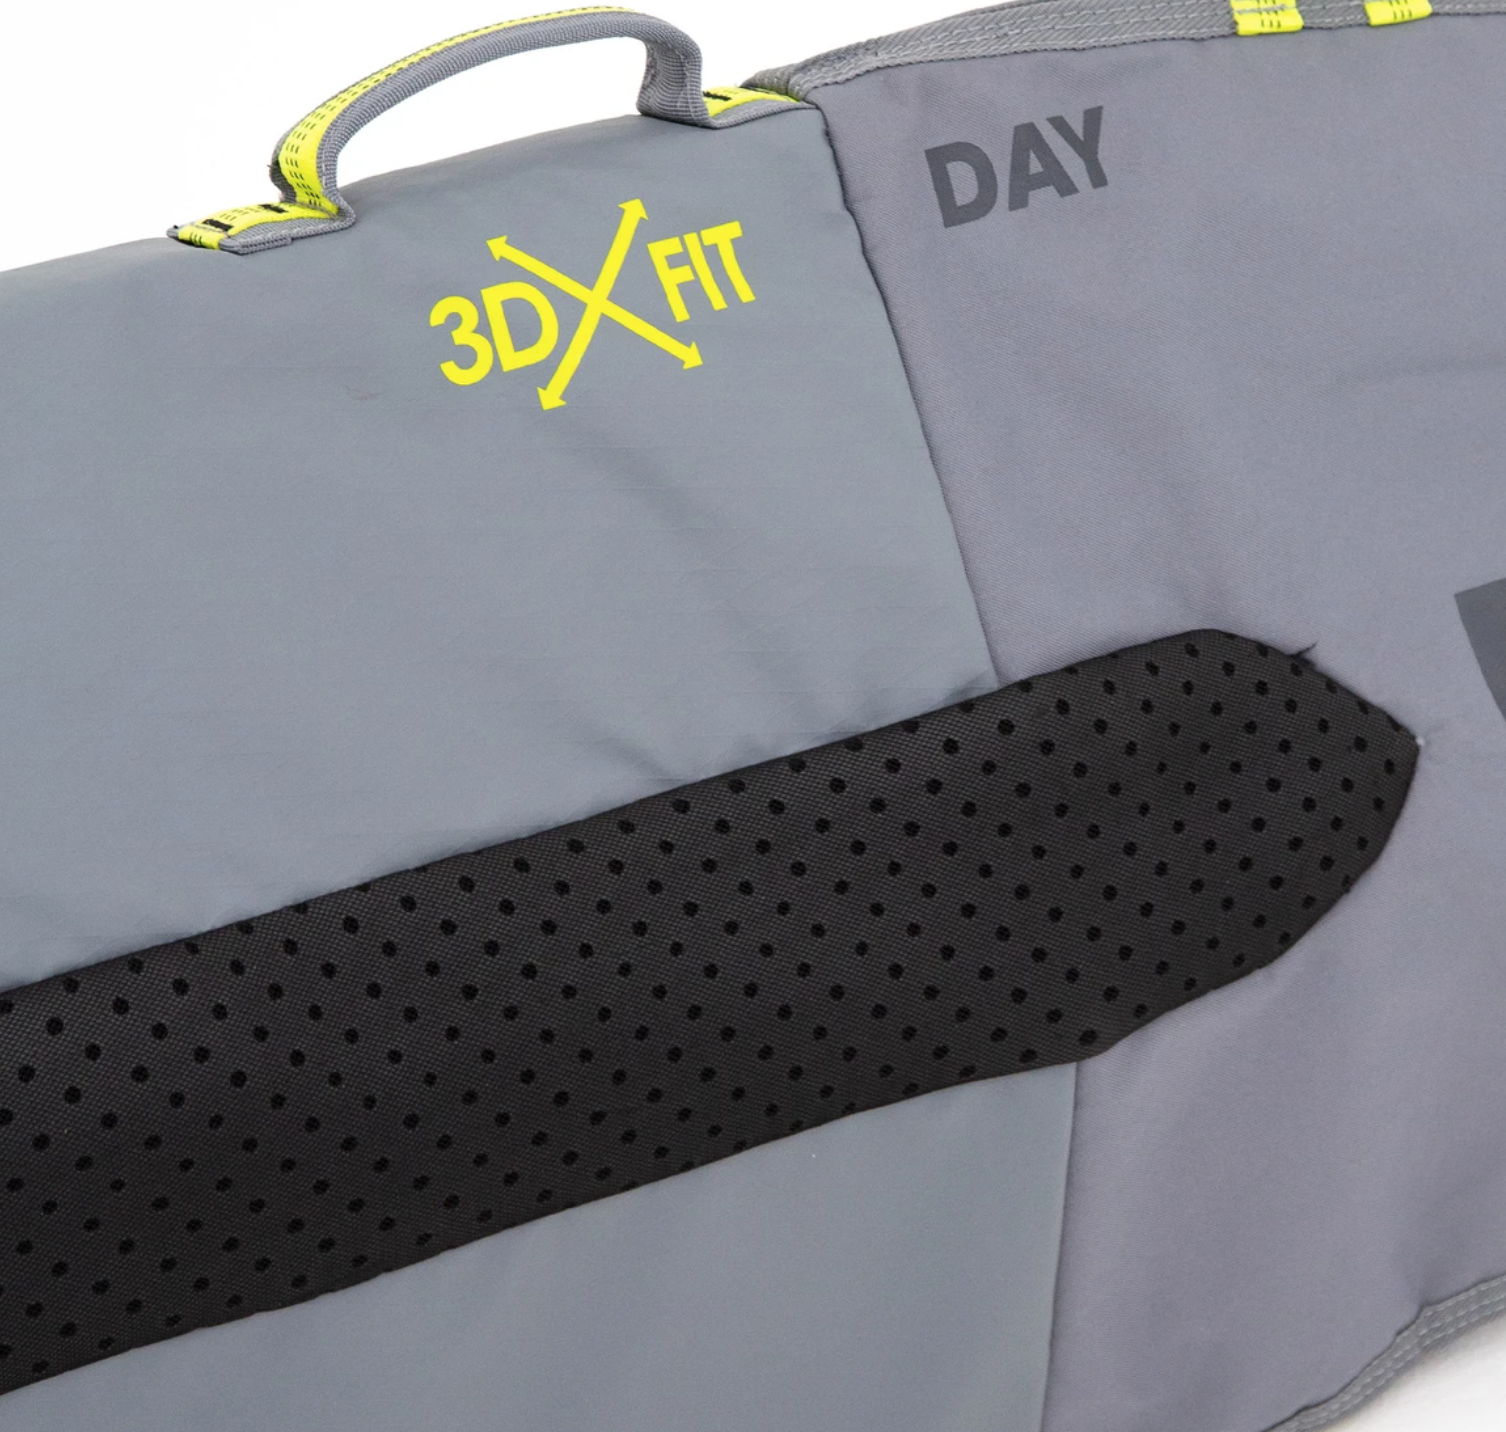 FCS 6'0 DAY BAG ALL PURPOSE GREY